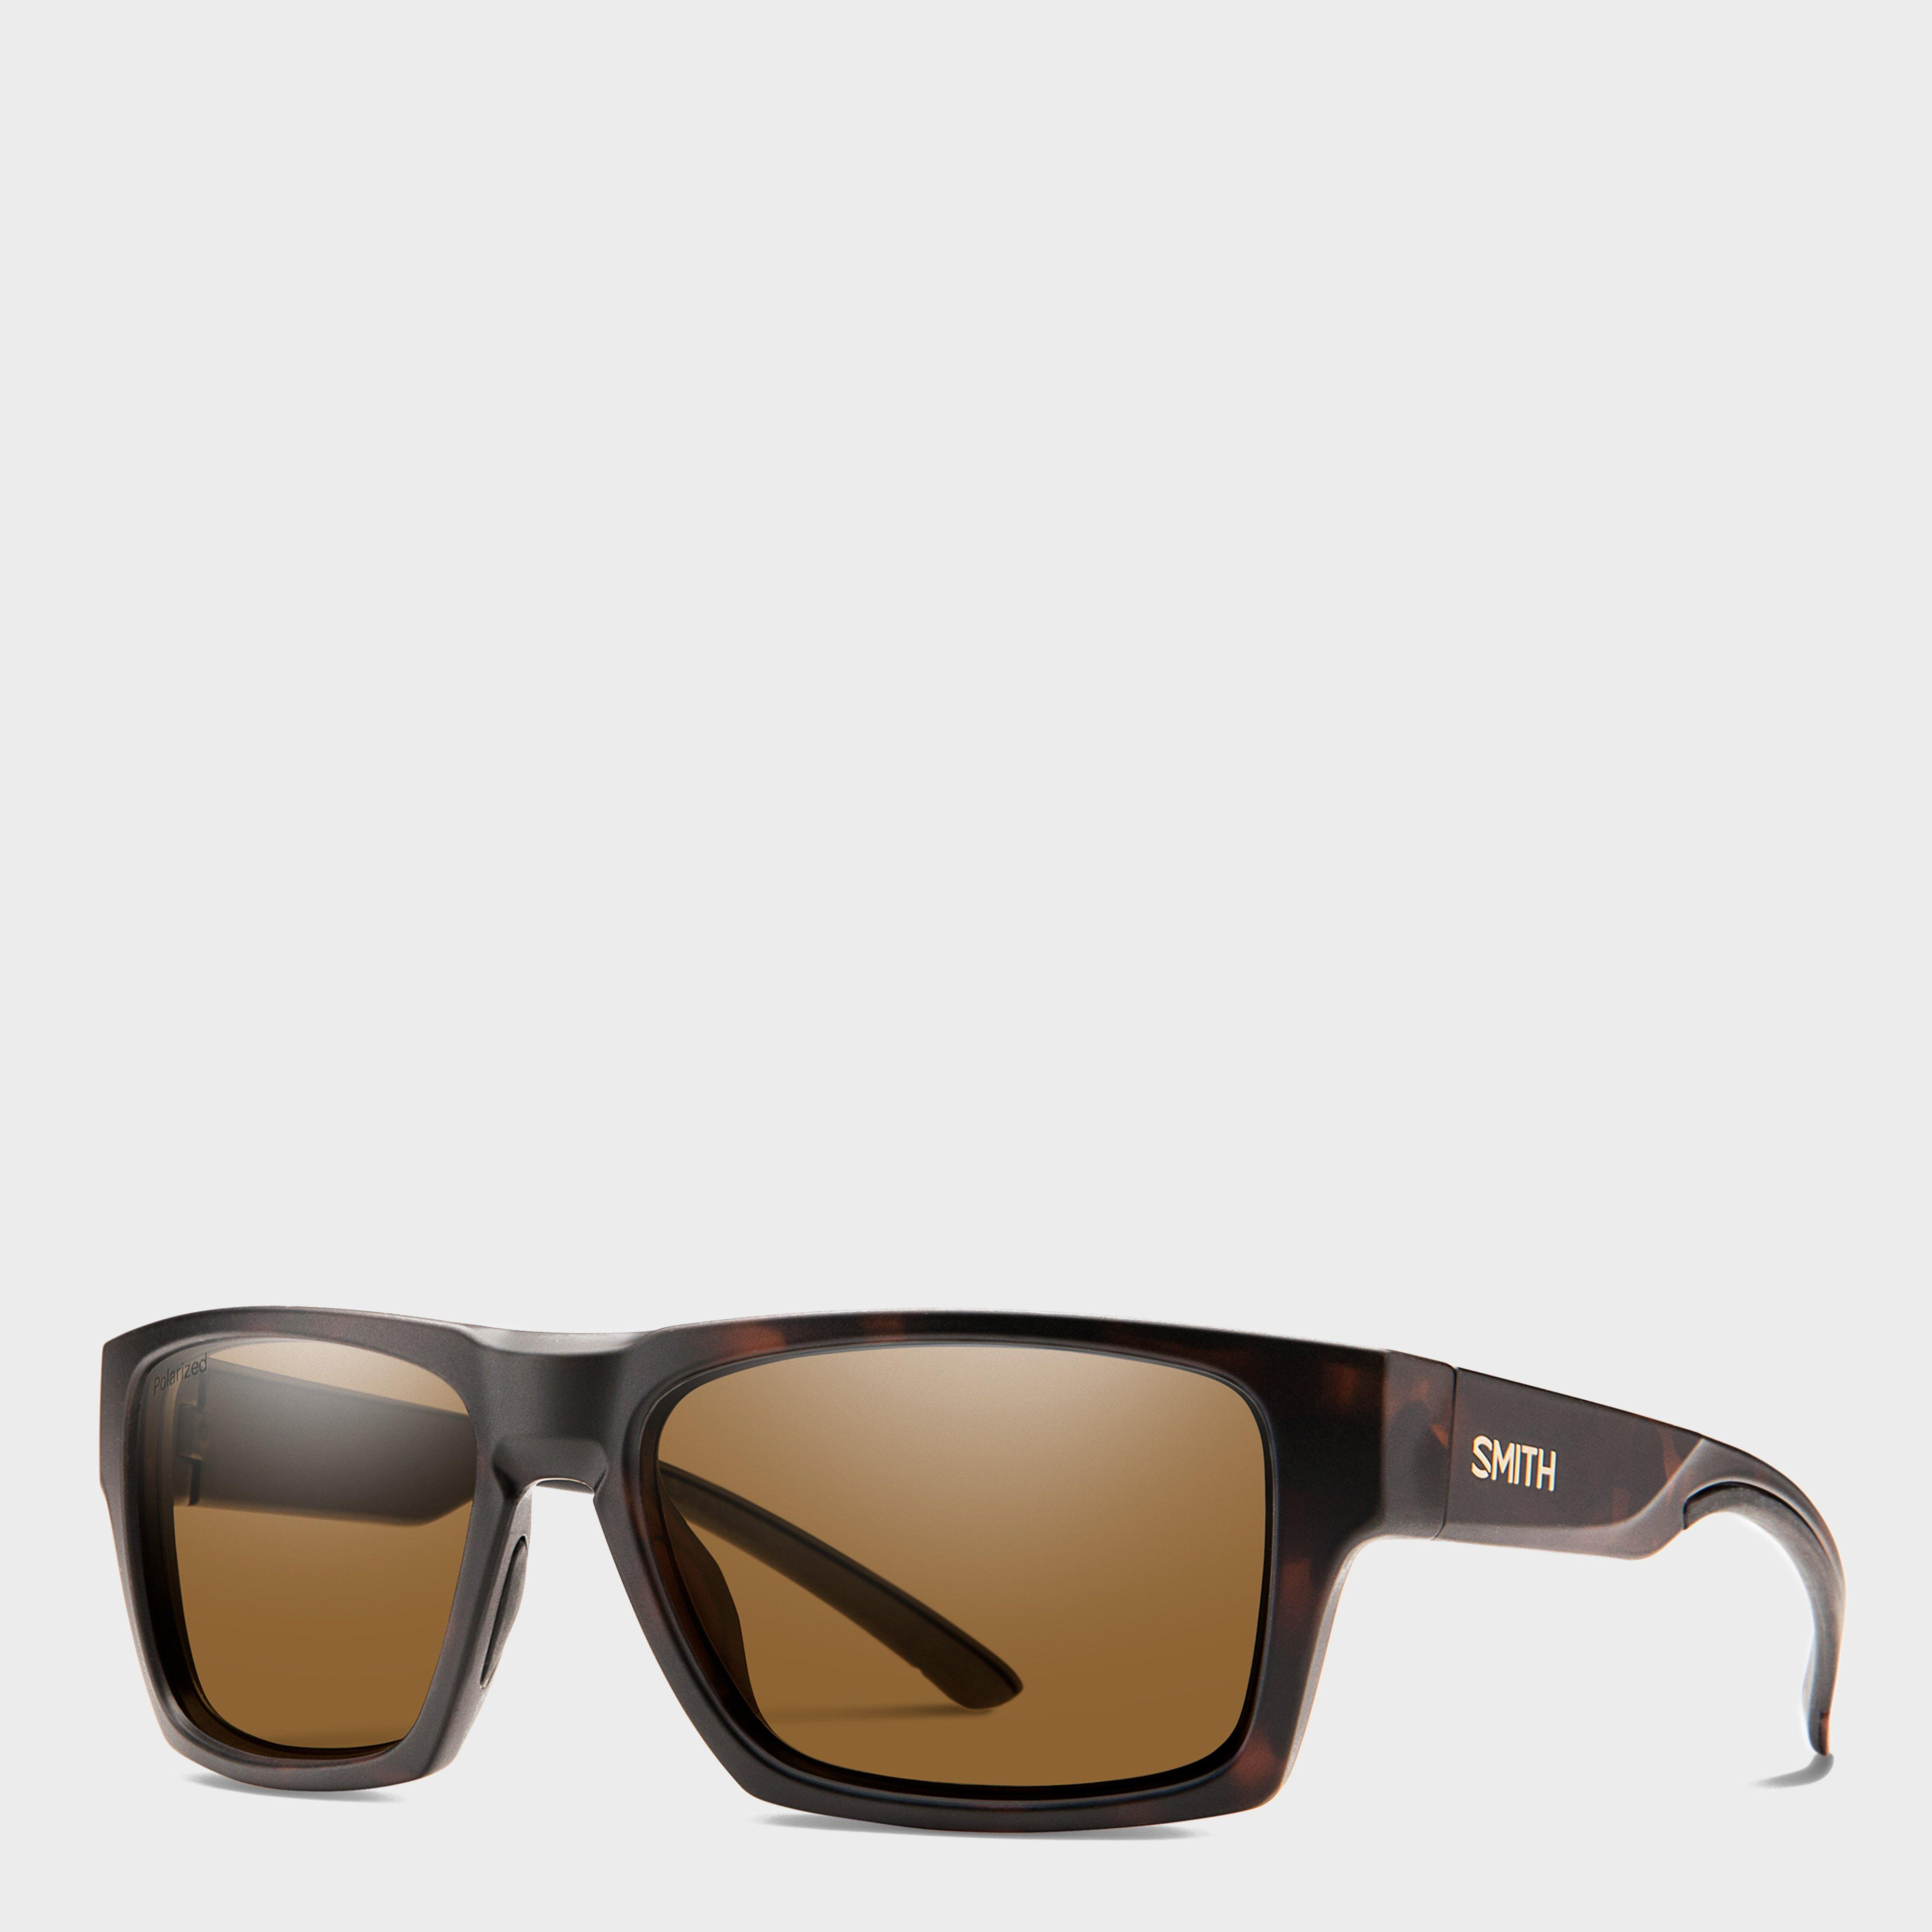 Smith Outlier 2 Sunglasses, Brown